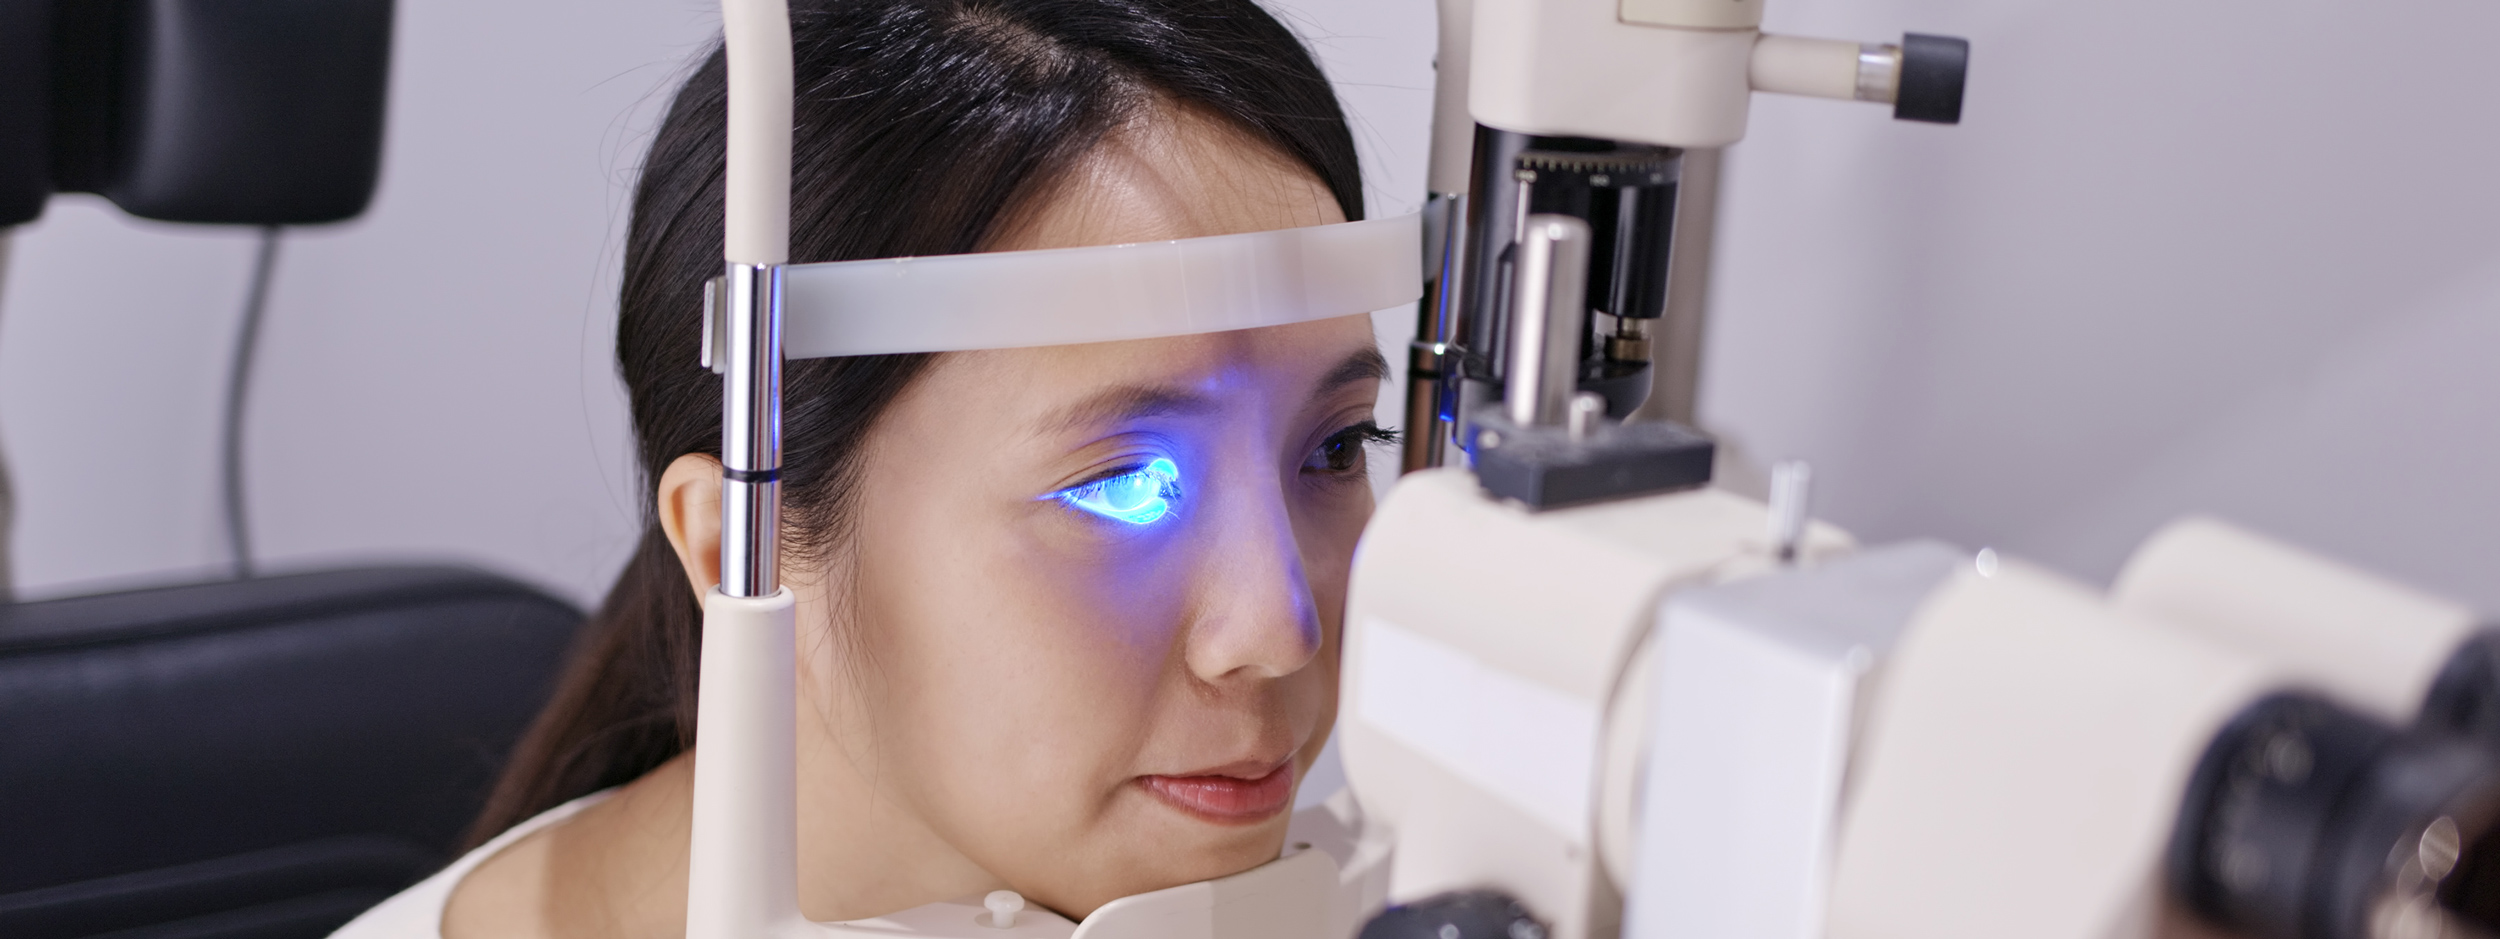 woman do eye test at clinic